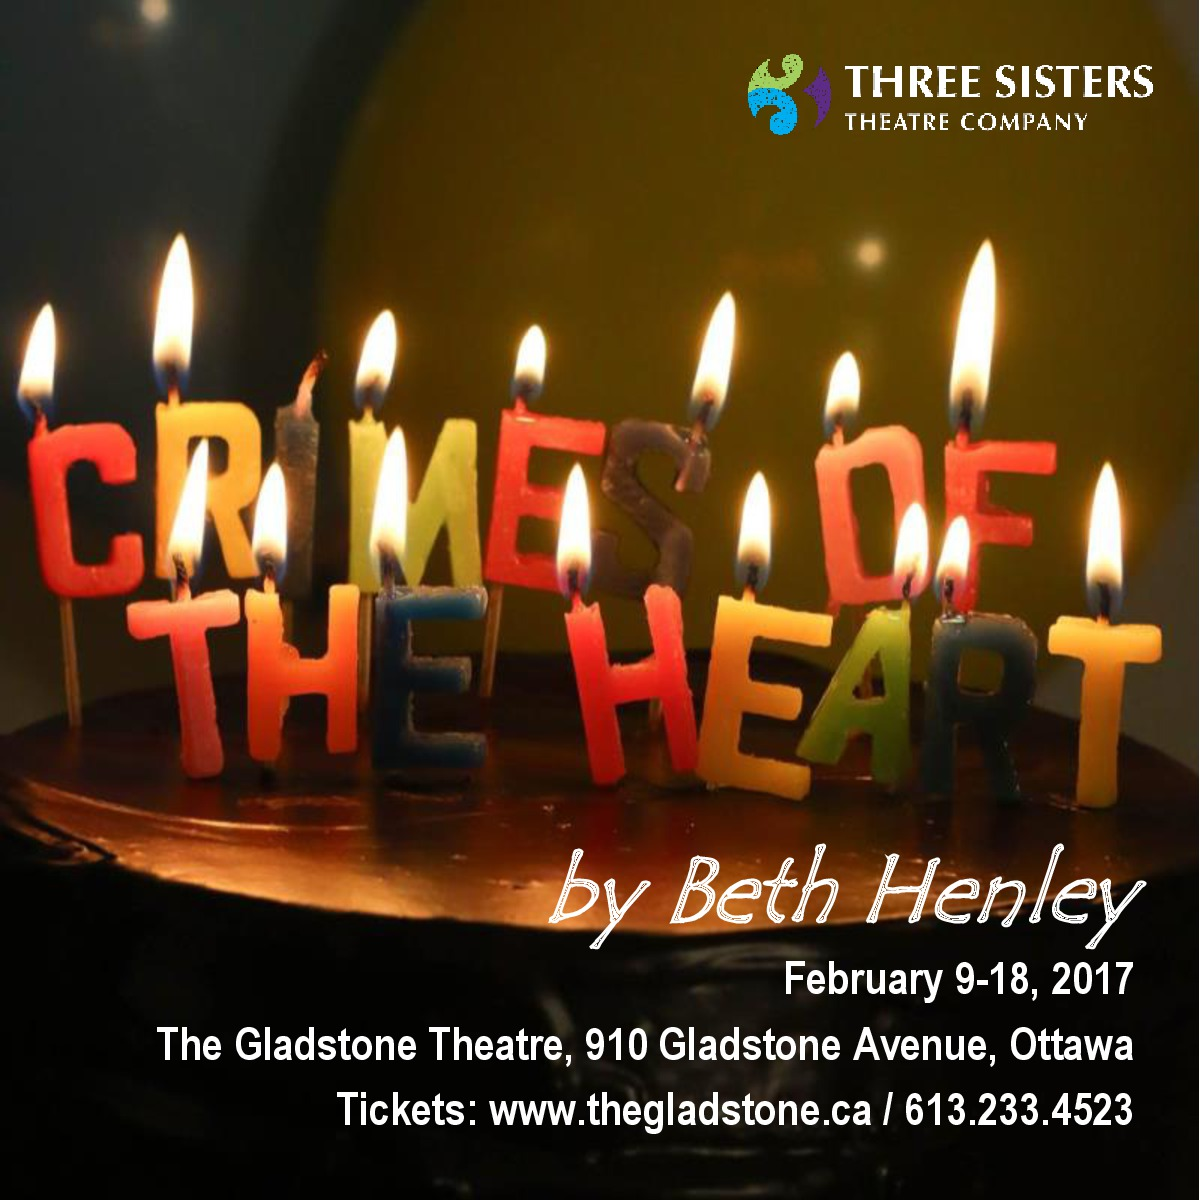 a critique of crimes of the heart a play by beth henley Stageworks theatre announces its fifth show of the 2017-2018 season, crimes of the heart, written by beth henley and directed by sam martinez the show runs march 2 through march winner of the 1981 pulitzer prize and the new york drama critics circle award warm-hearted, irreverent, zany and.